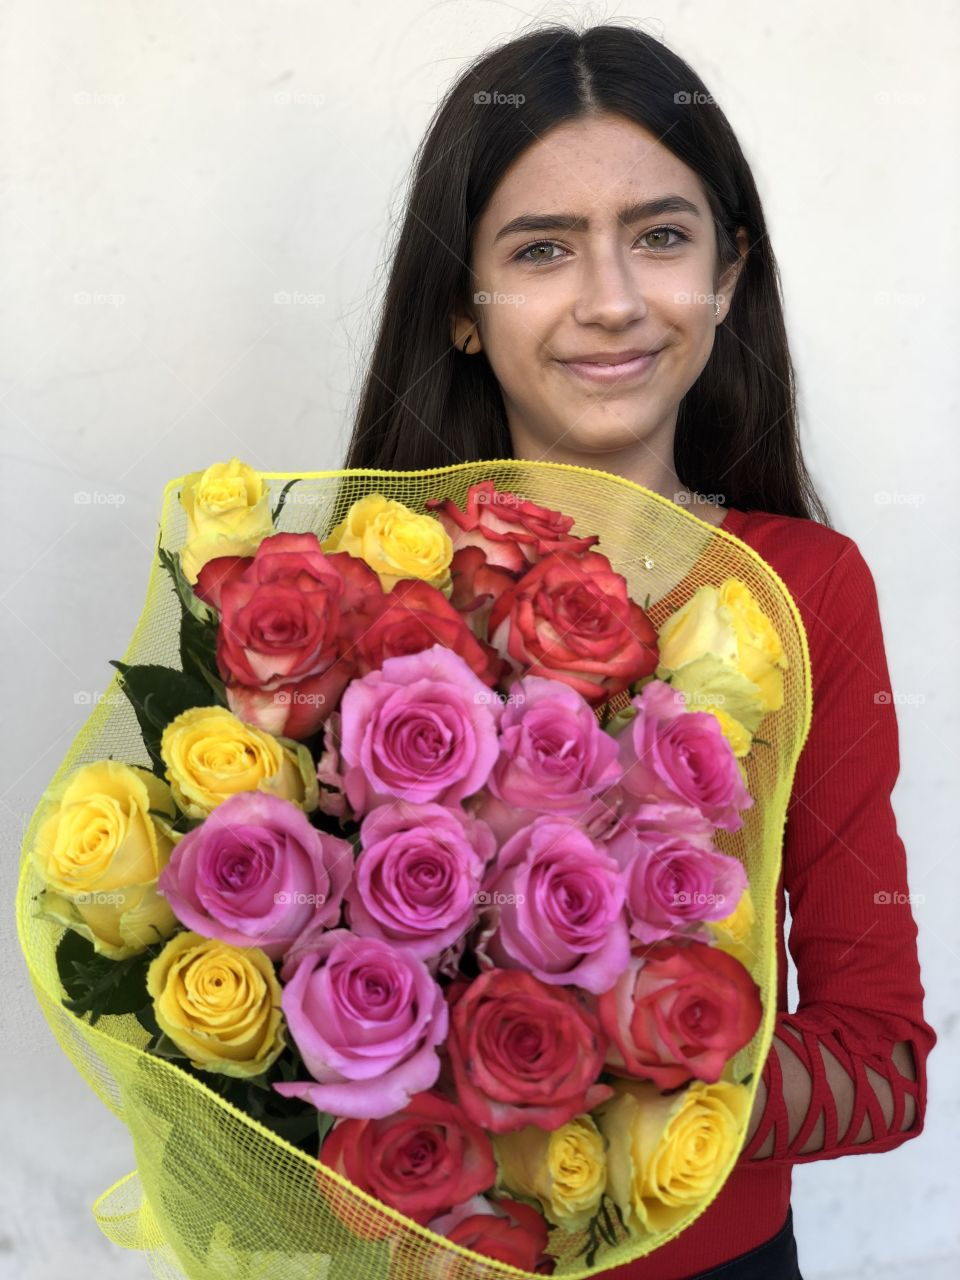 Young girl with a colorful bunch of roses